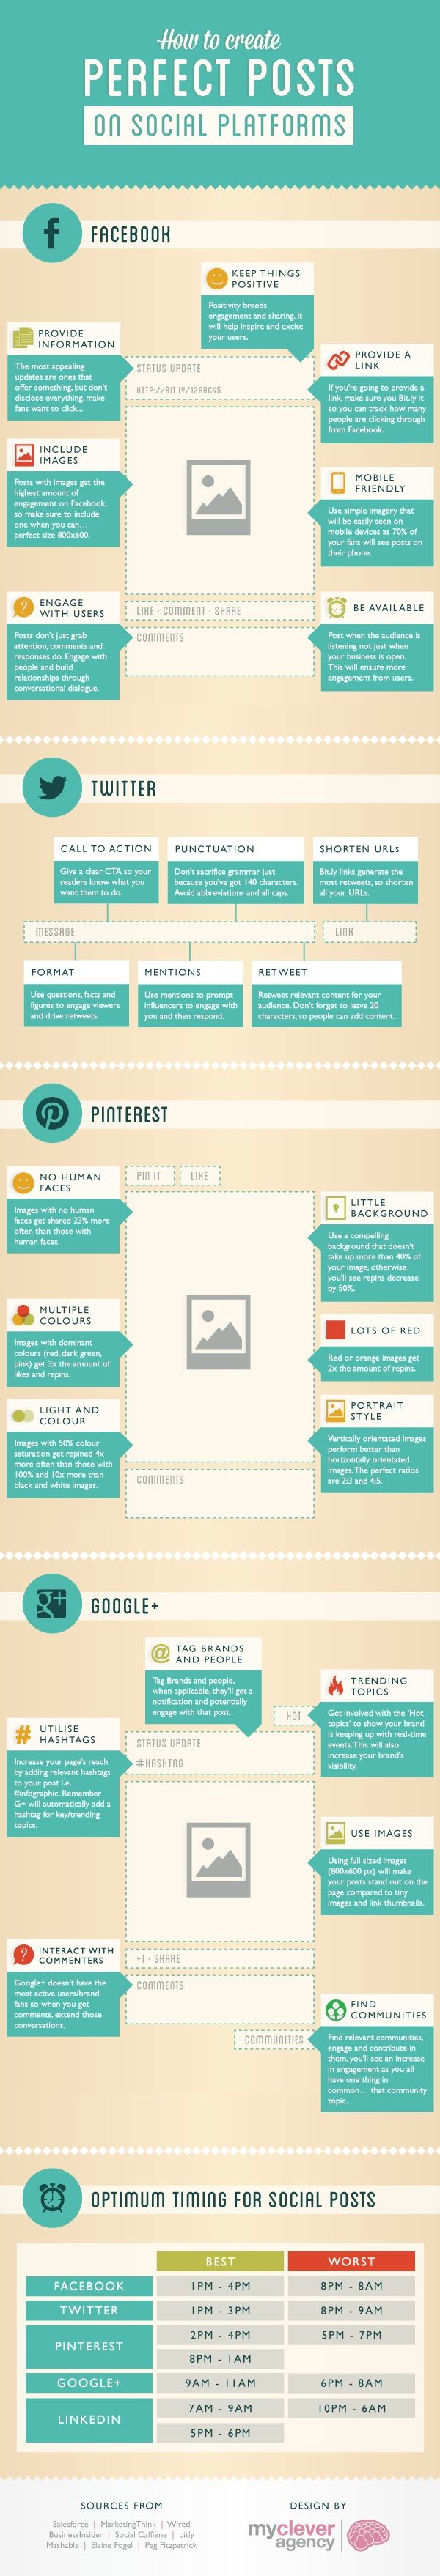 Infographic: How to Master Social Media Outlets